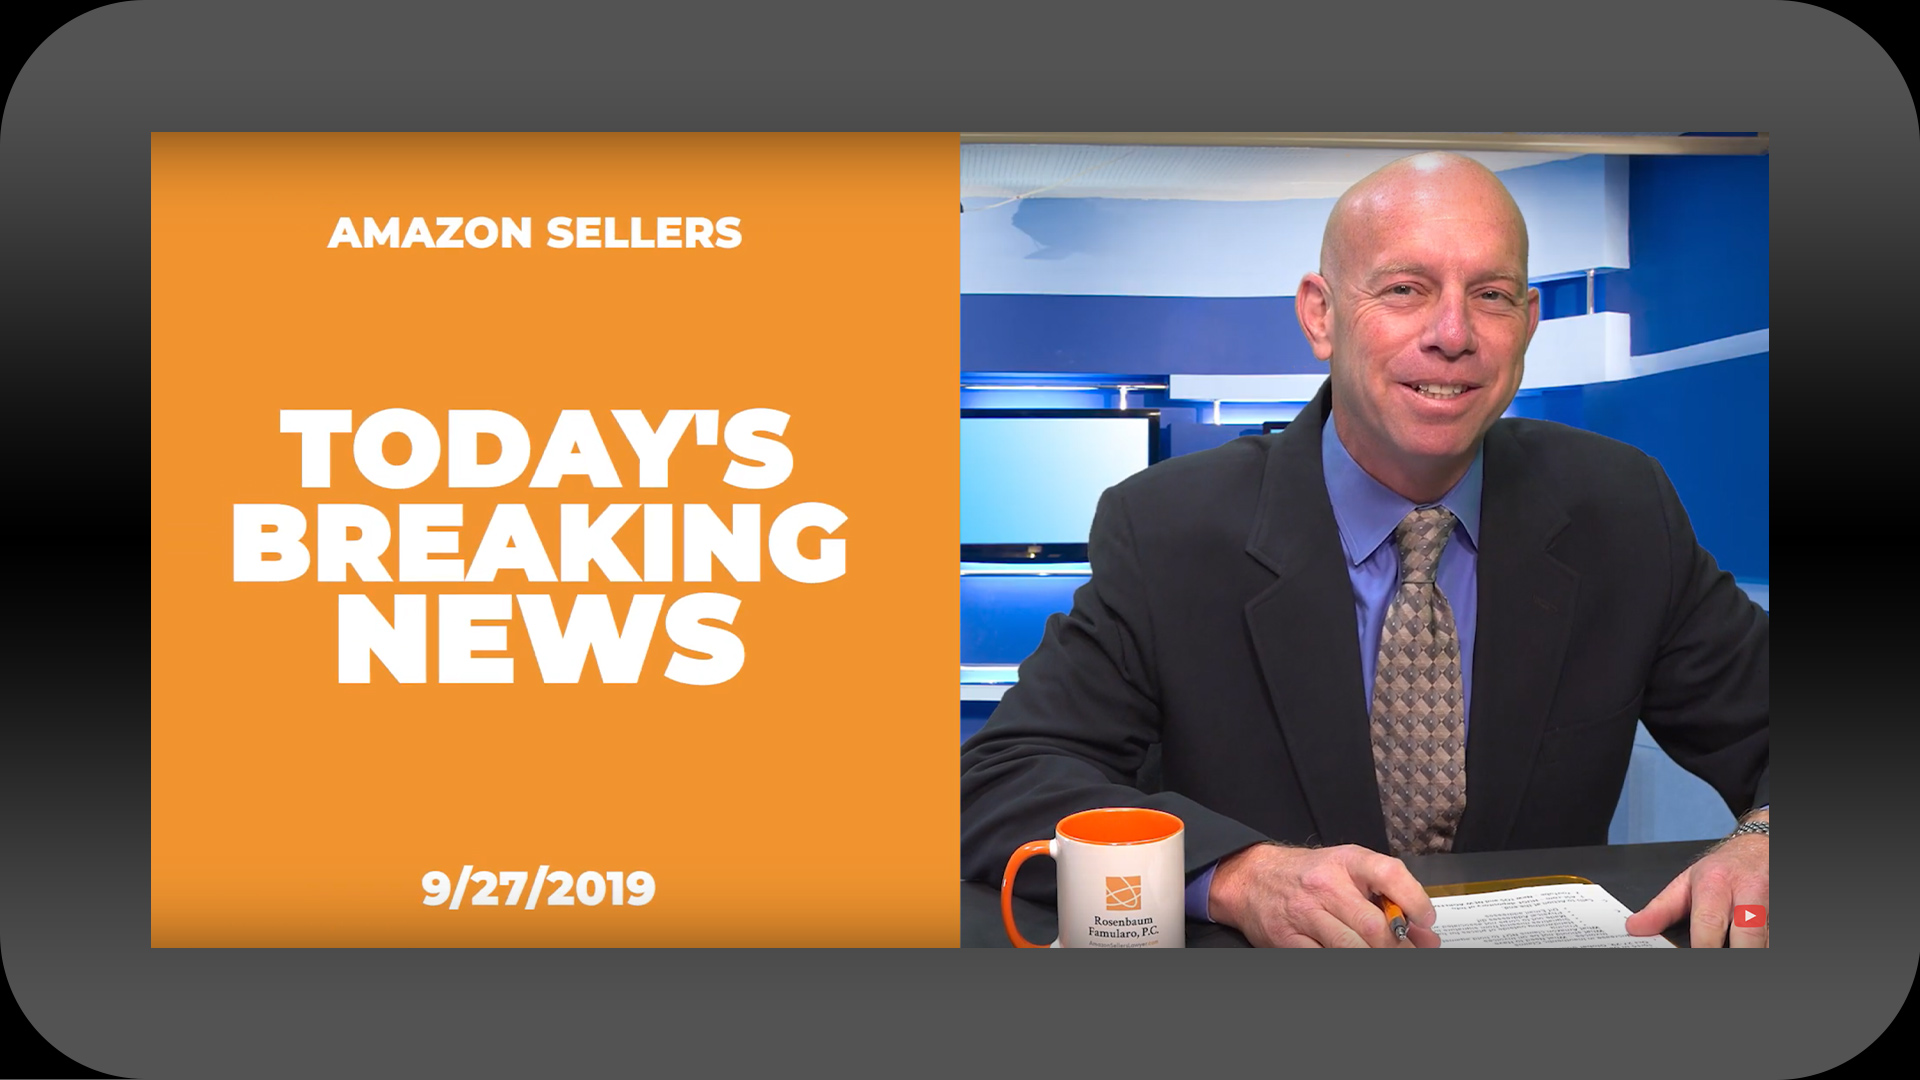 Amazon Sellers News 9-27-19